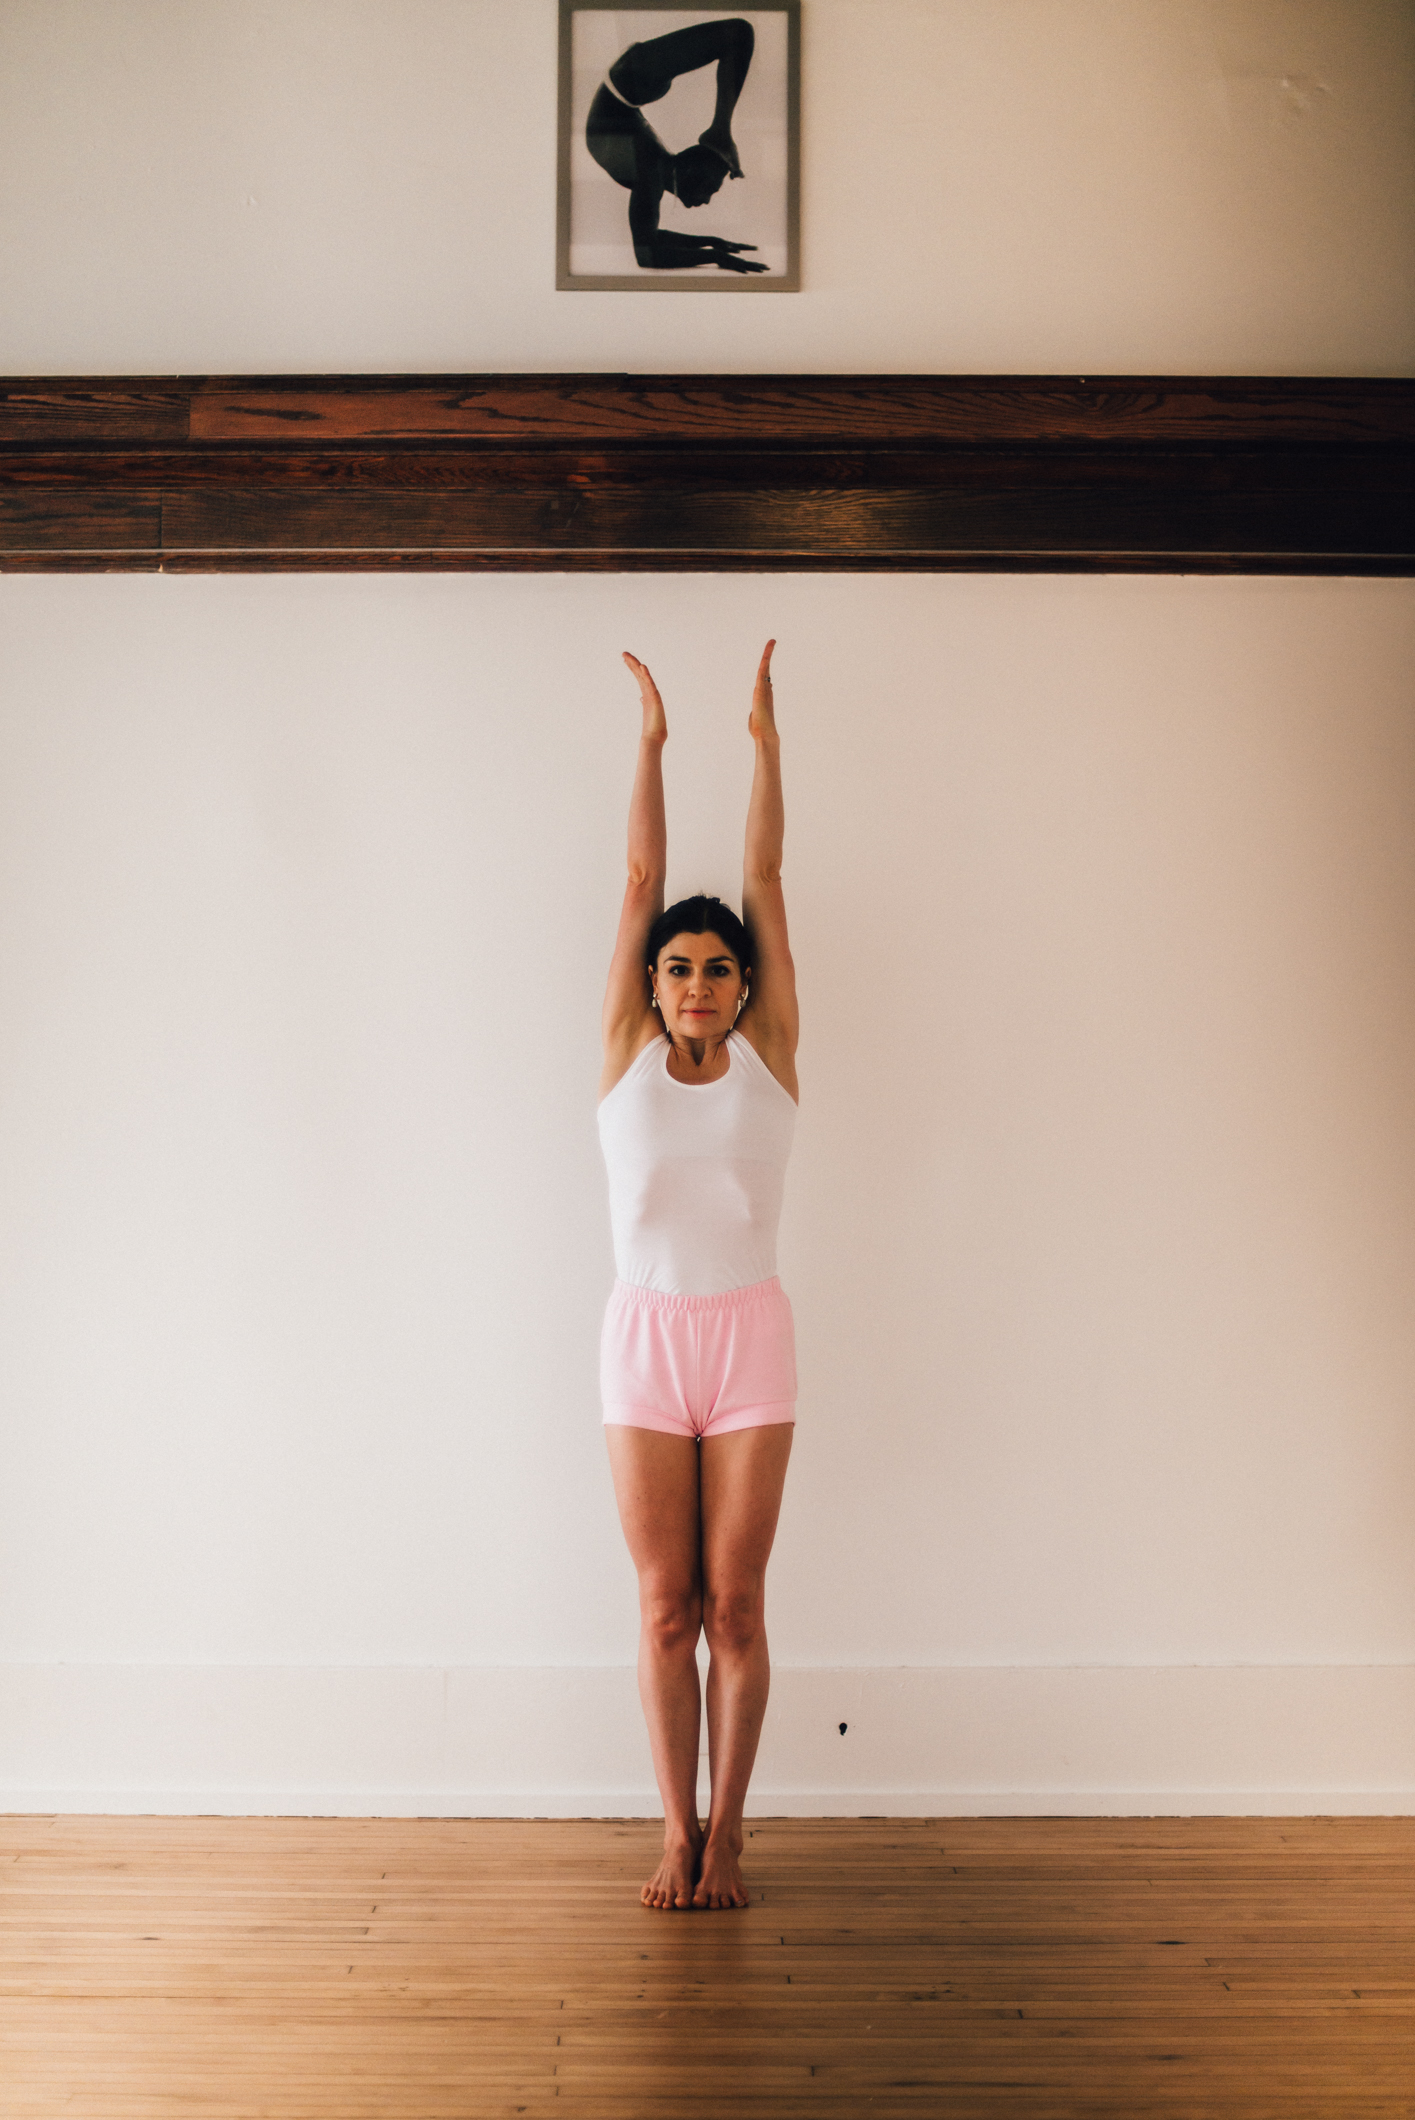 Standing postures are the foundation of the Iyengar method of yoga. In addition to developing awareness in action, they help improve muscular skeletal alignment.